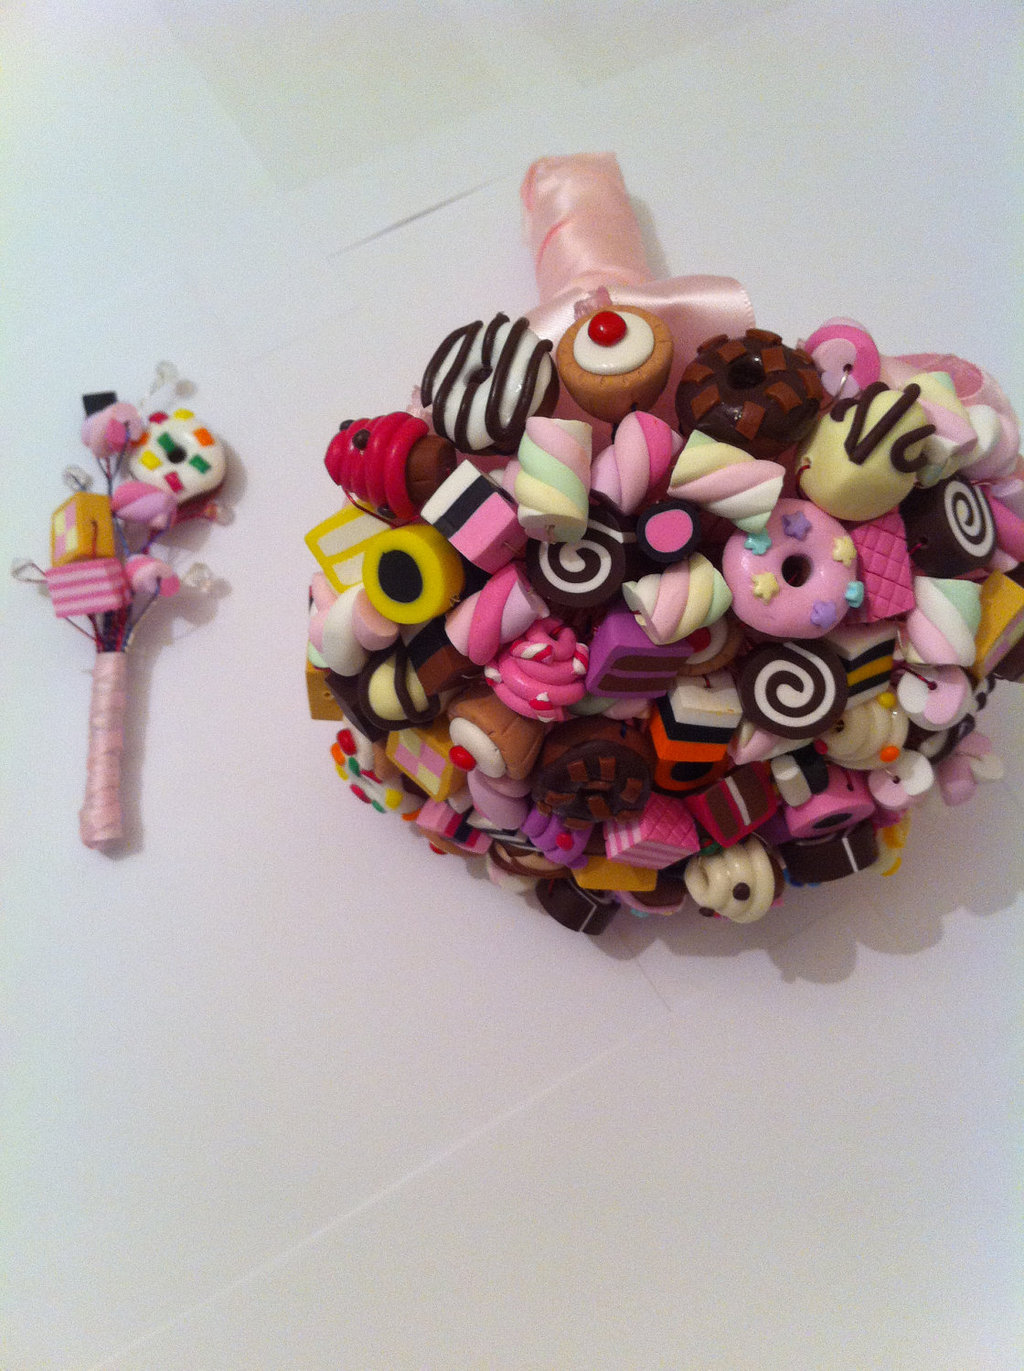 sugary-sweet-wedding-decor-edible-handmade-weddings-candy-bouquet-boutonniere